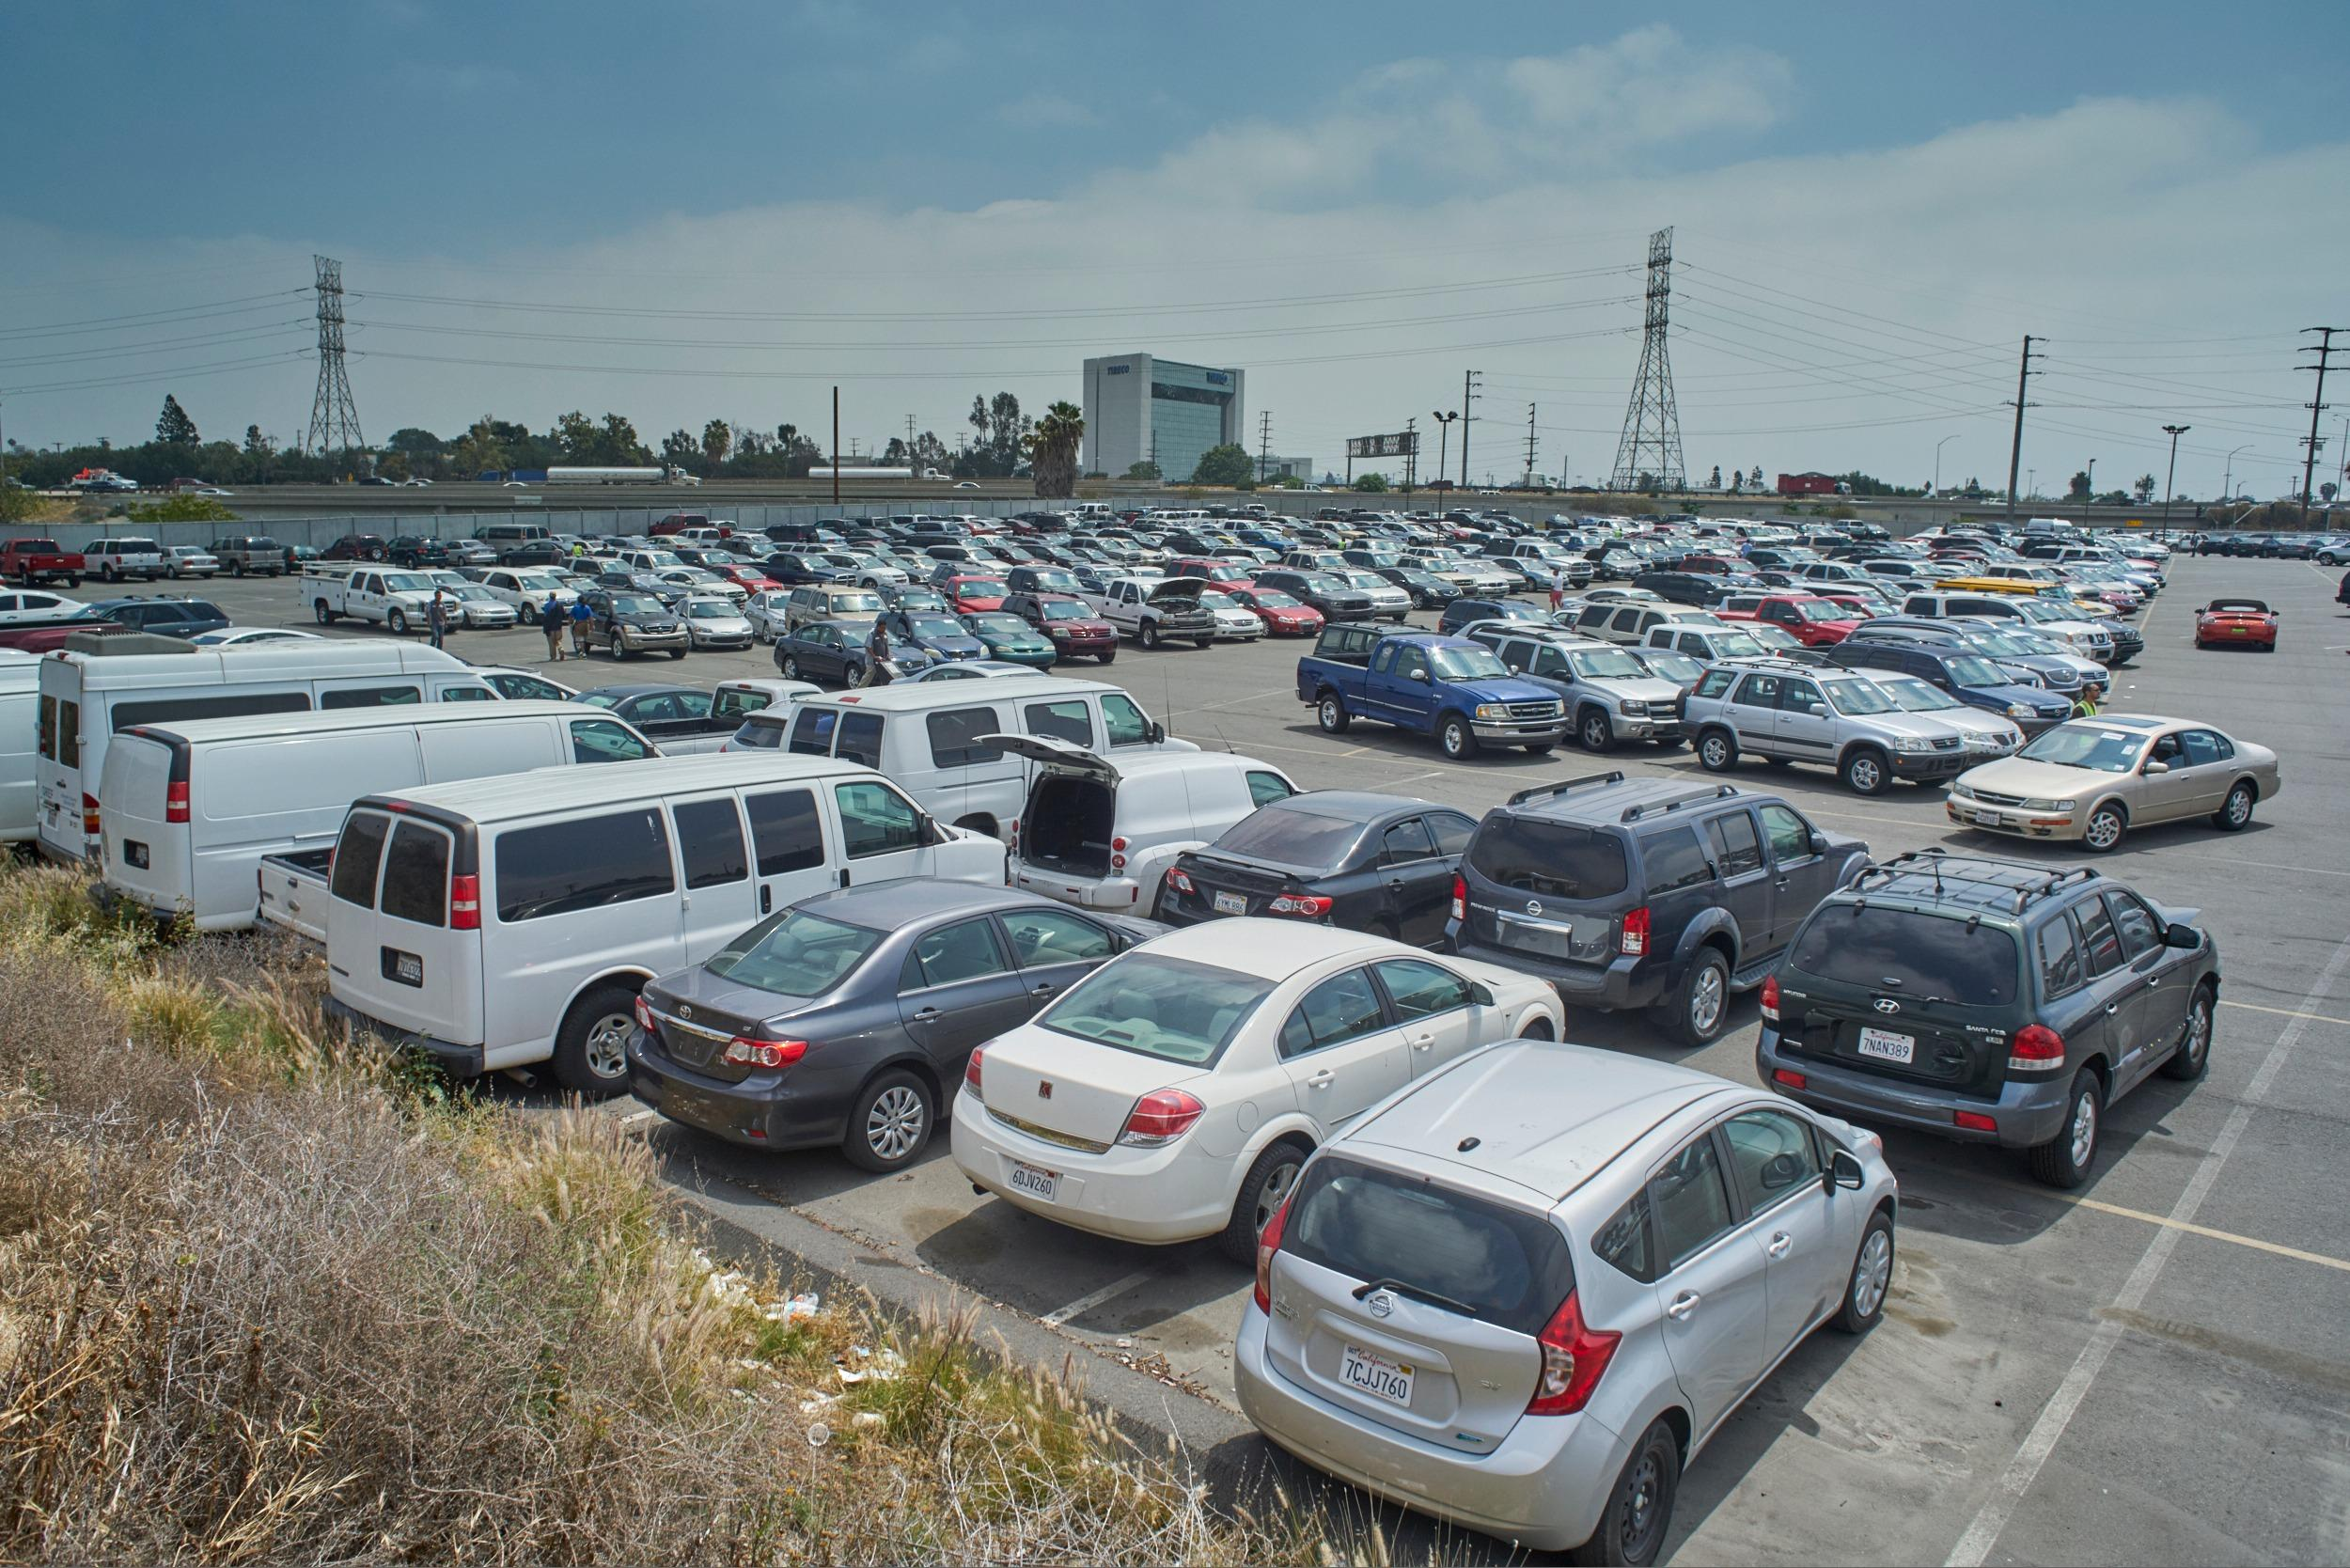 Autonation Auto Auction Los Angeles Auto Auction Gardena Ca 90248